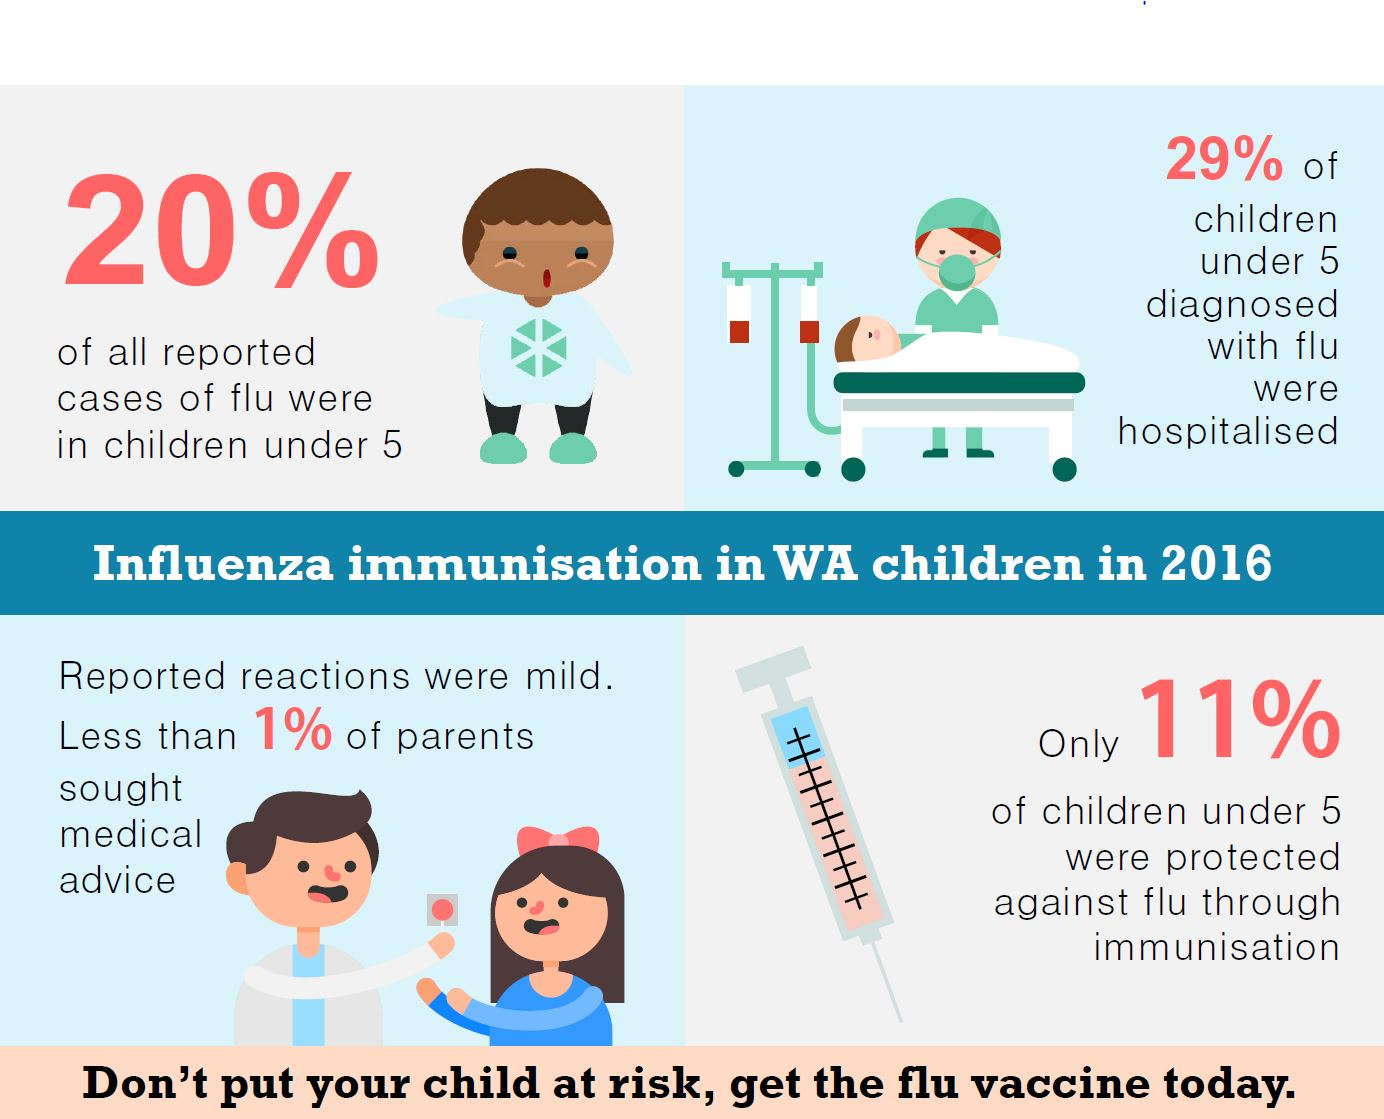 Infographic about why it is so important for children to get the flu vaccine